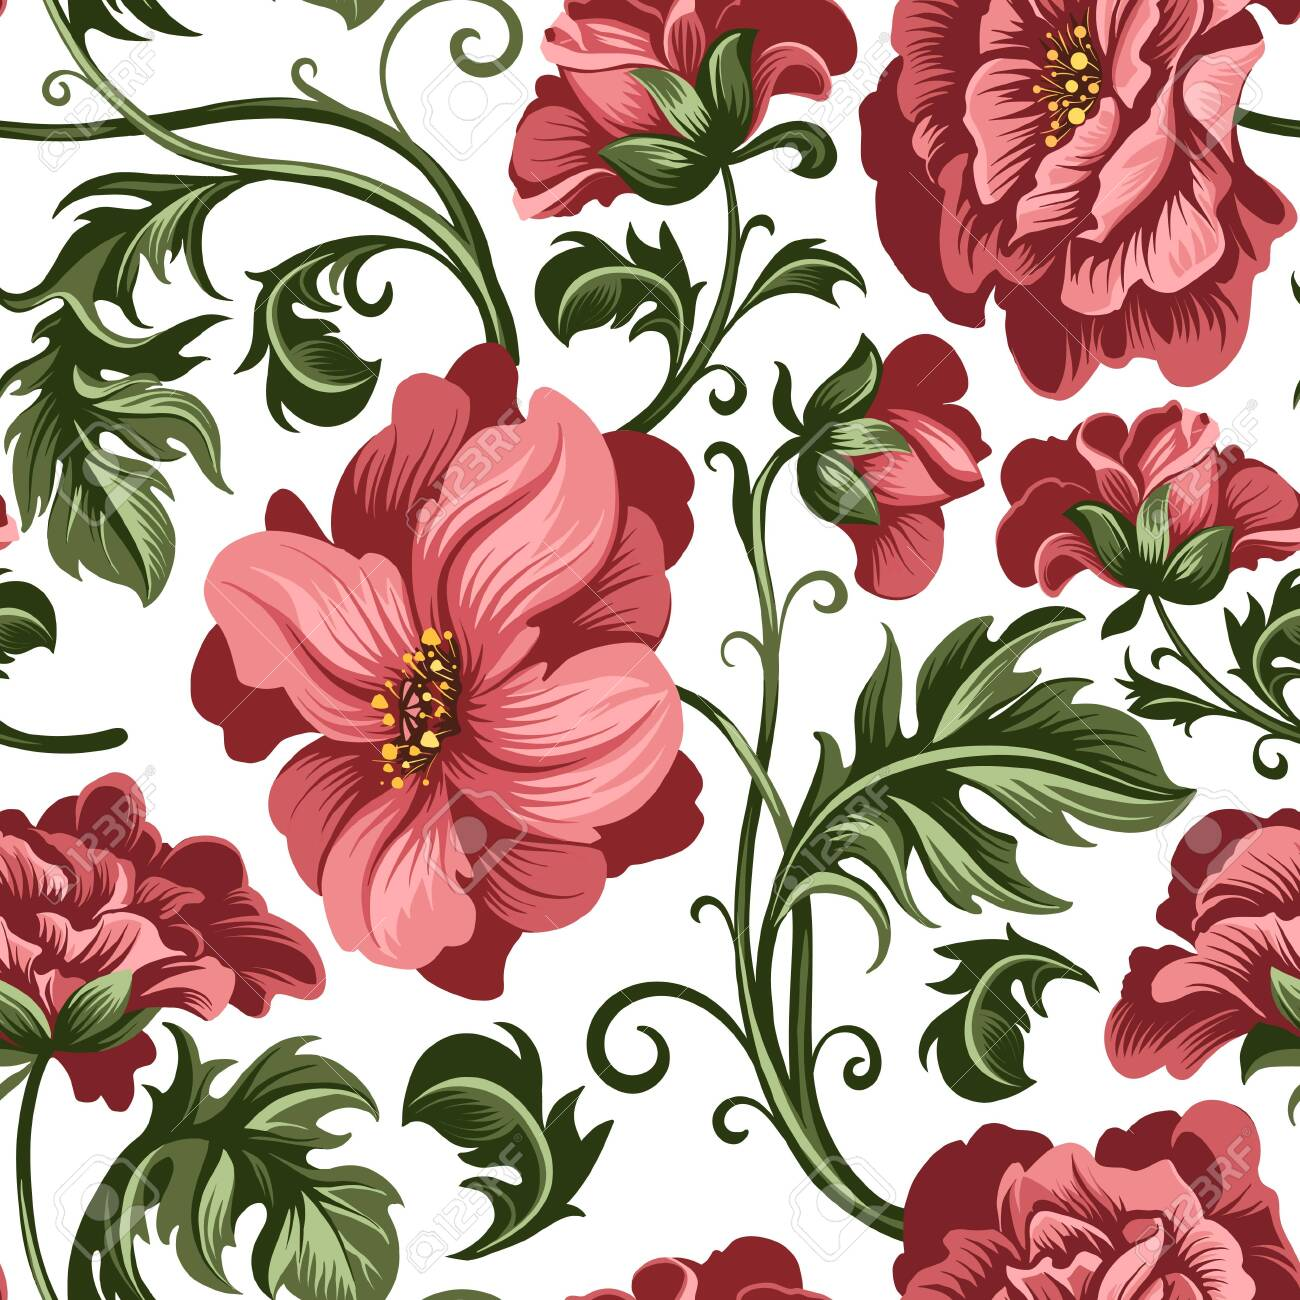 seamless pattern of decorative red peony and rose flowers - 143082048